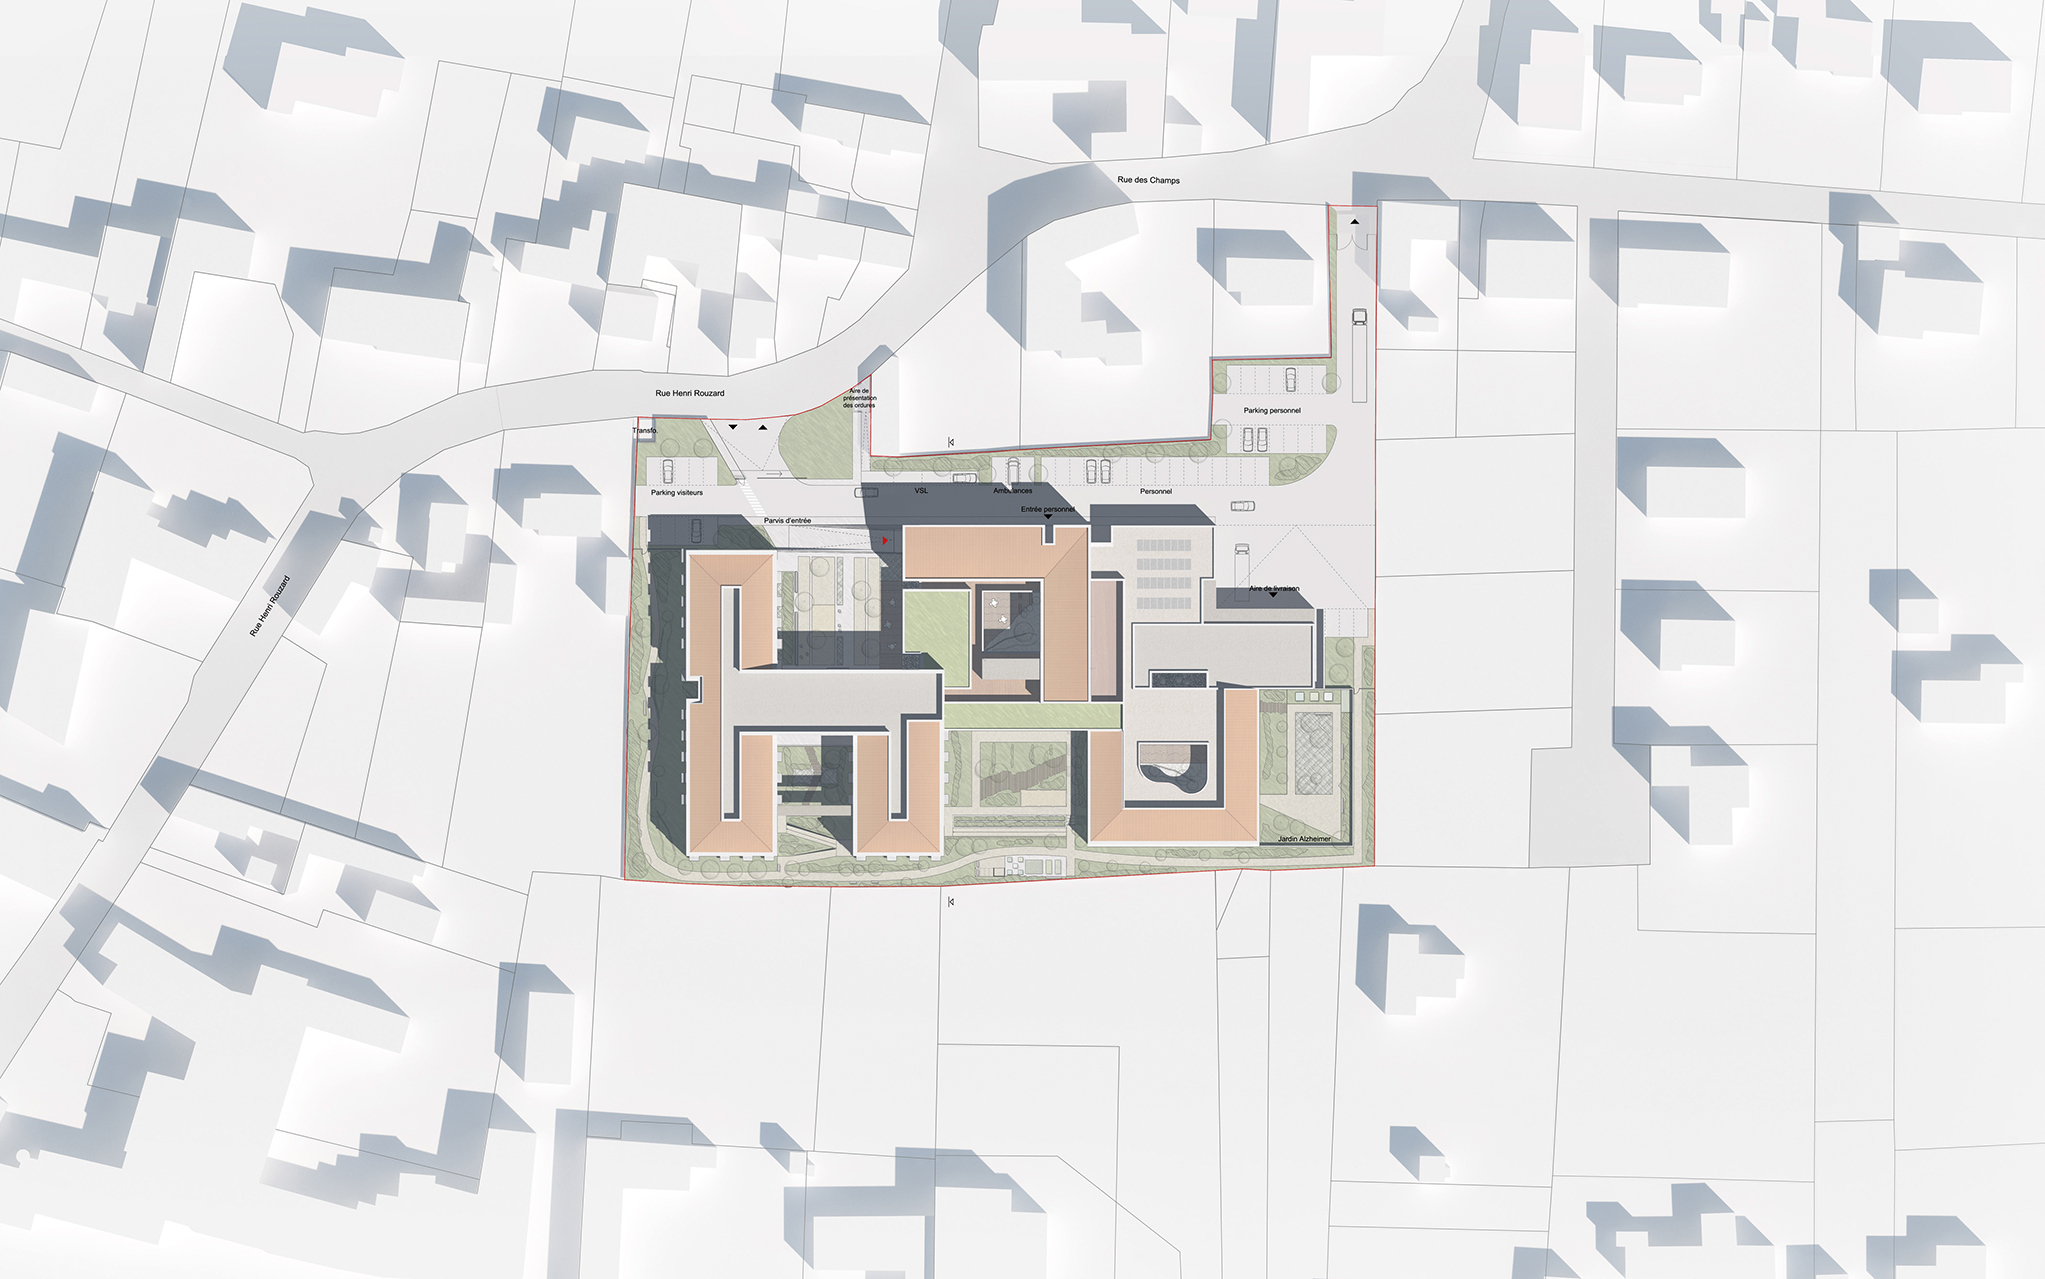 ehpad-maubourget-projet-idp-architectes-toulouse-concours-2019-plan-masse